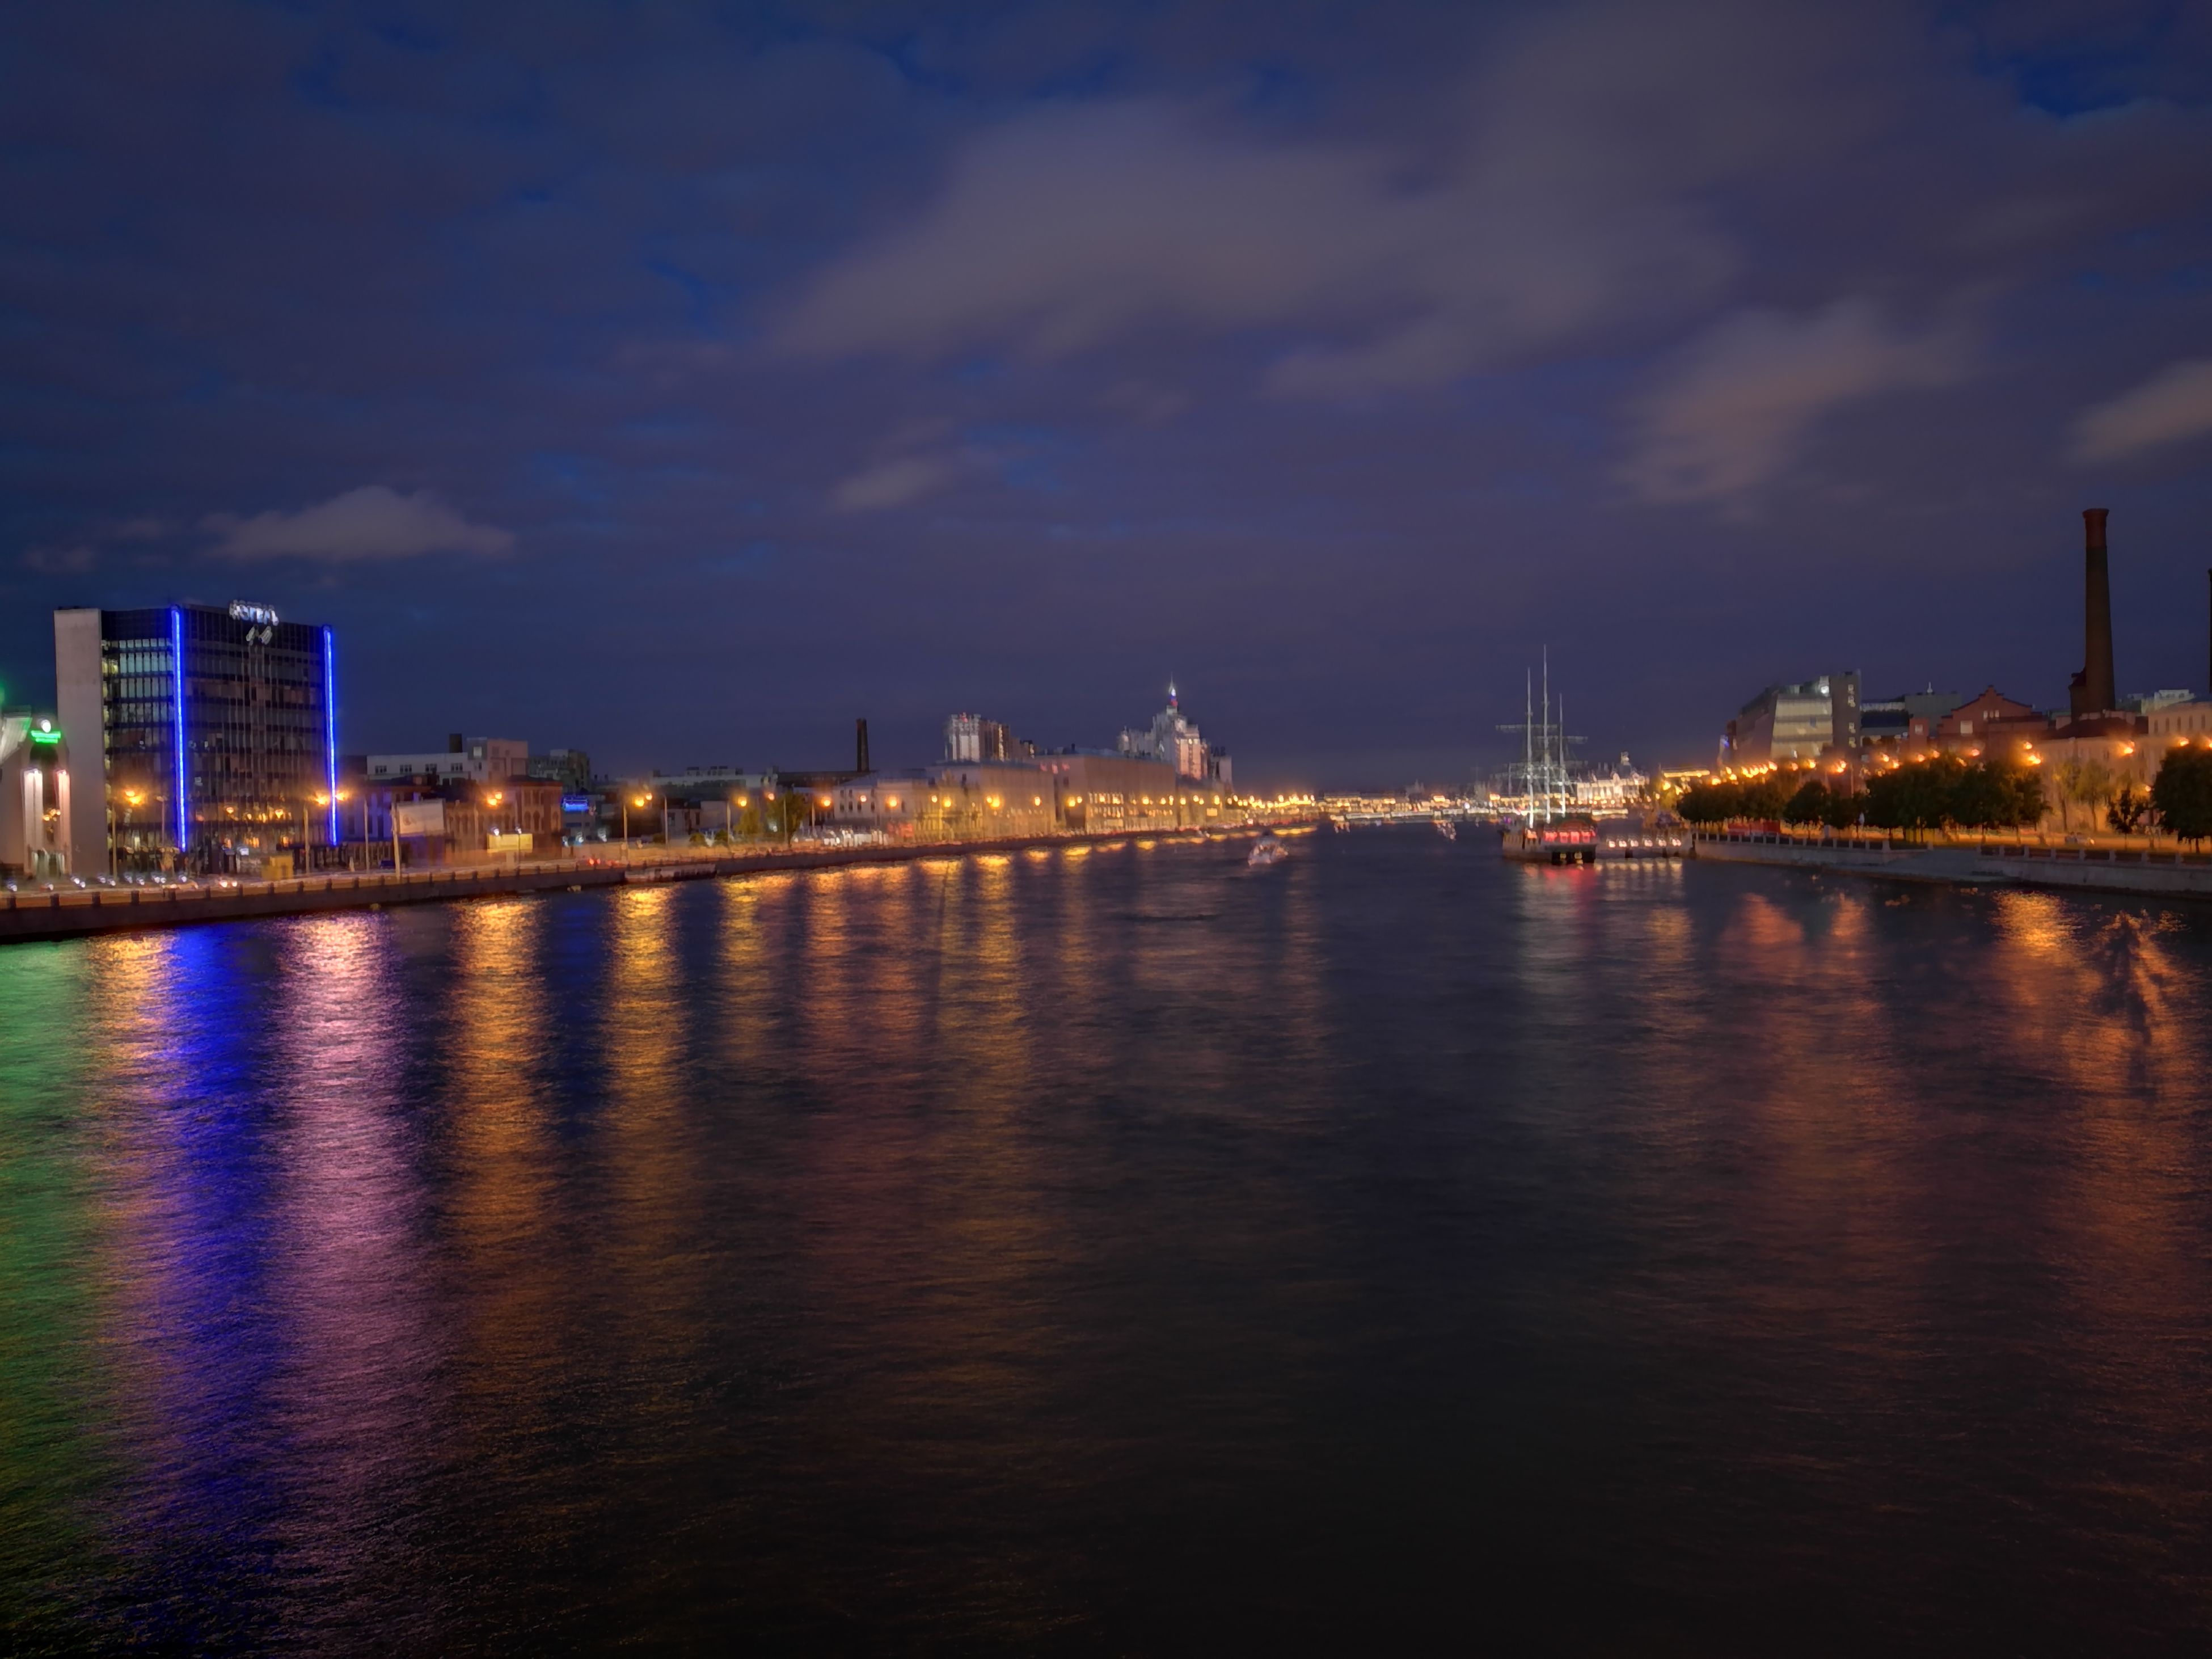 architecture, built structure, building exterior, illuminated, sky, waterfront, city, water, night, reflection, cloud - sky, travel destinations, river, cityscape, no people, outdoors, skyscraper, urban skyline, nature